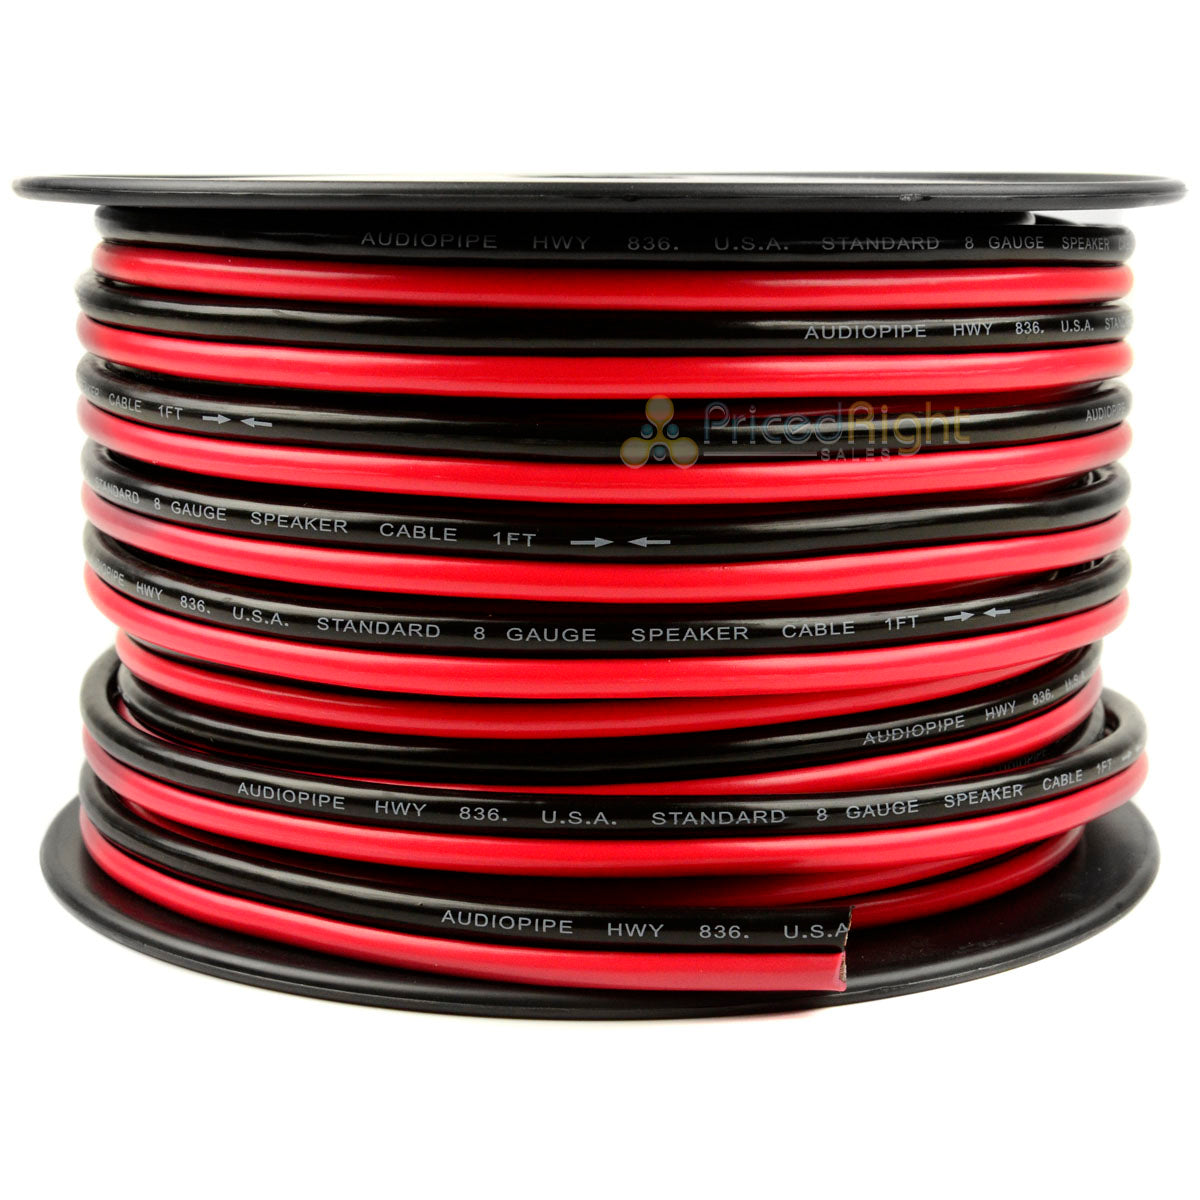 100 ft 8 Gauge Speaker Wire Zip Cable Car Home Audio Black and Red Audiopipe